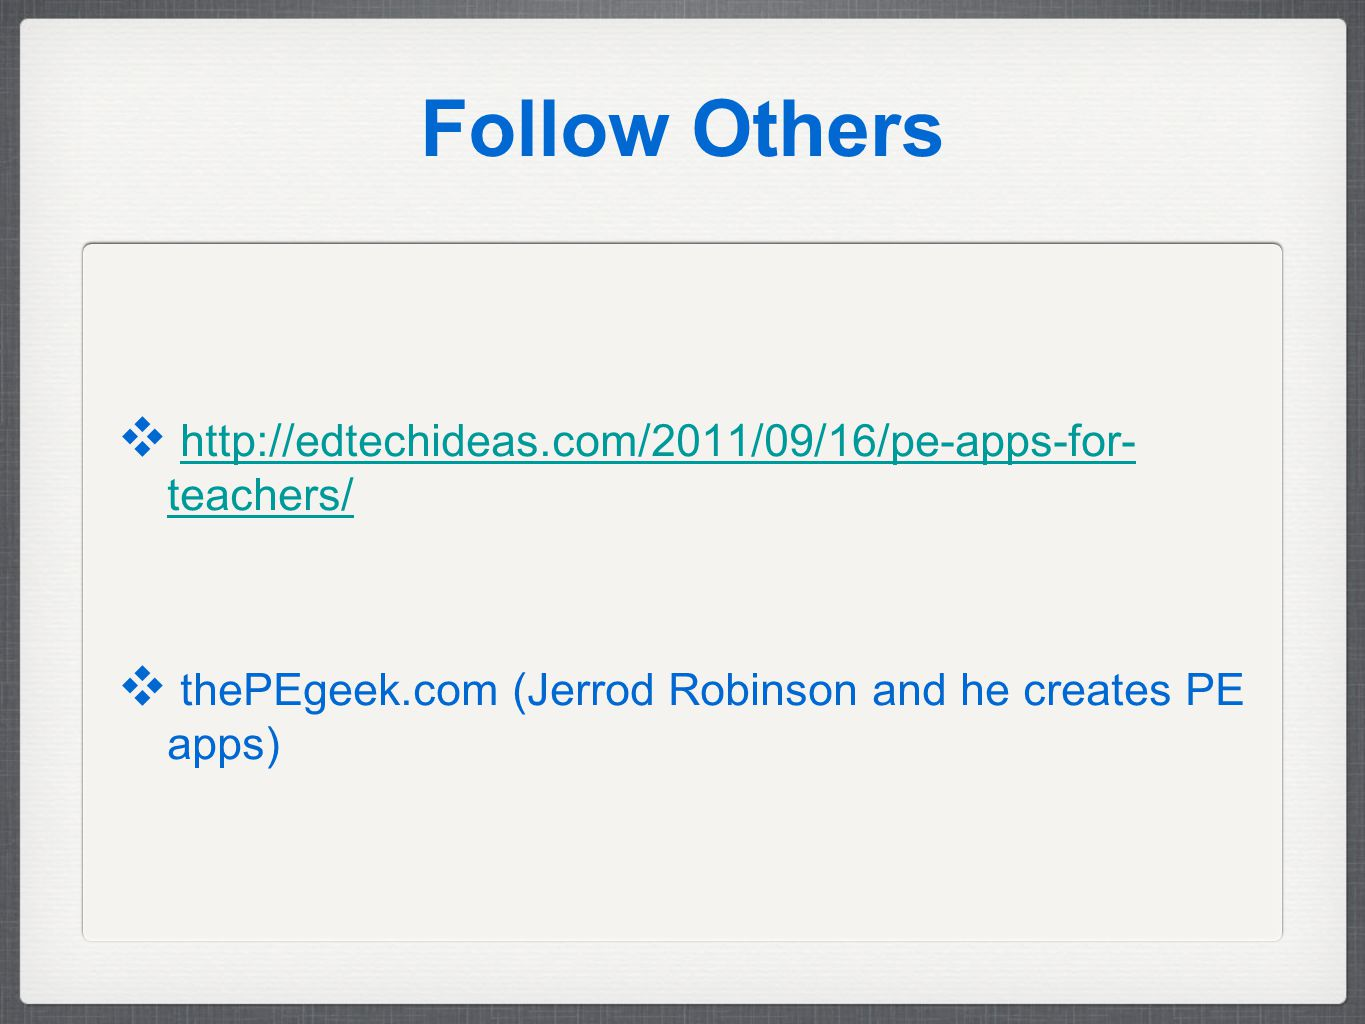 Follow Others ❖ http://edtechideas.com/2011/09/16/pe-apps-for- teachers/http://edtechideas.com/2011/09/16/pe-apps-for- teachers/ ❖ thePEgeek.com (Jerrod Robinson and he creates PE apps)